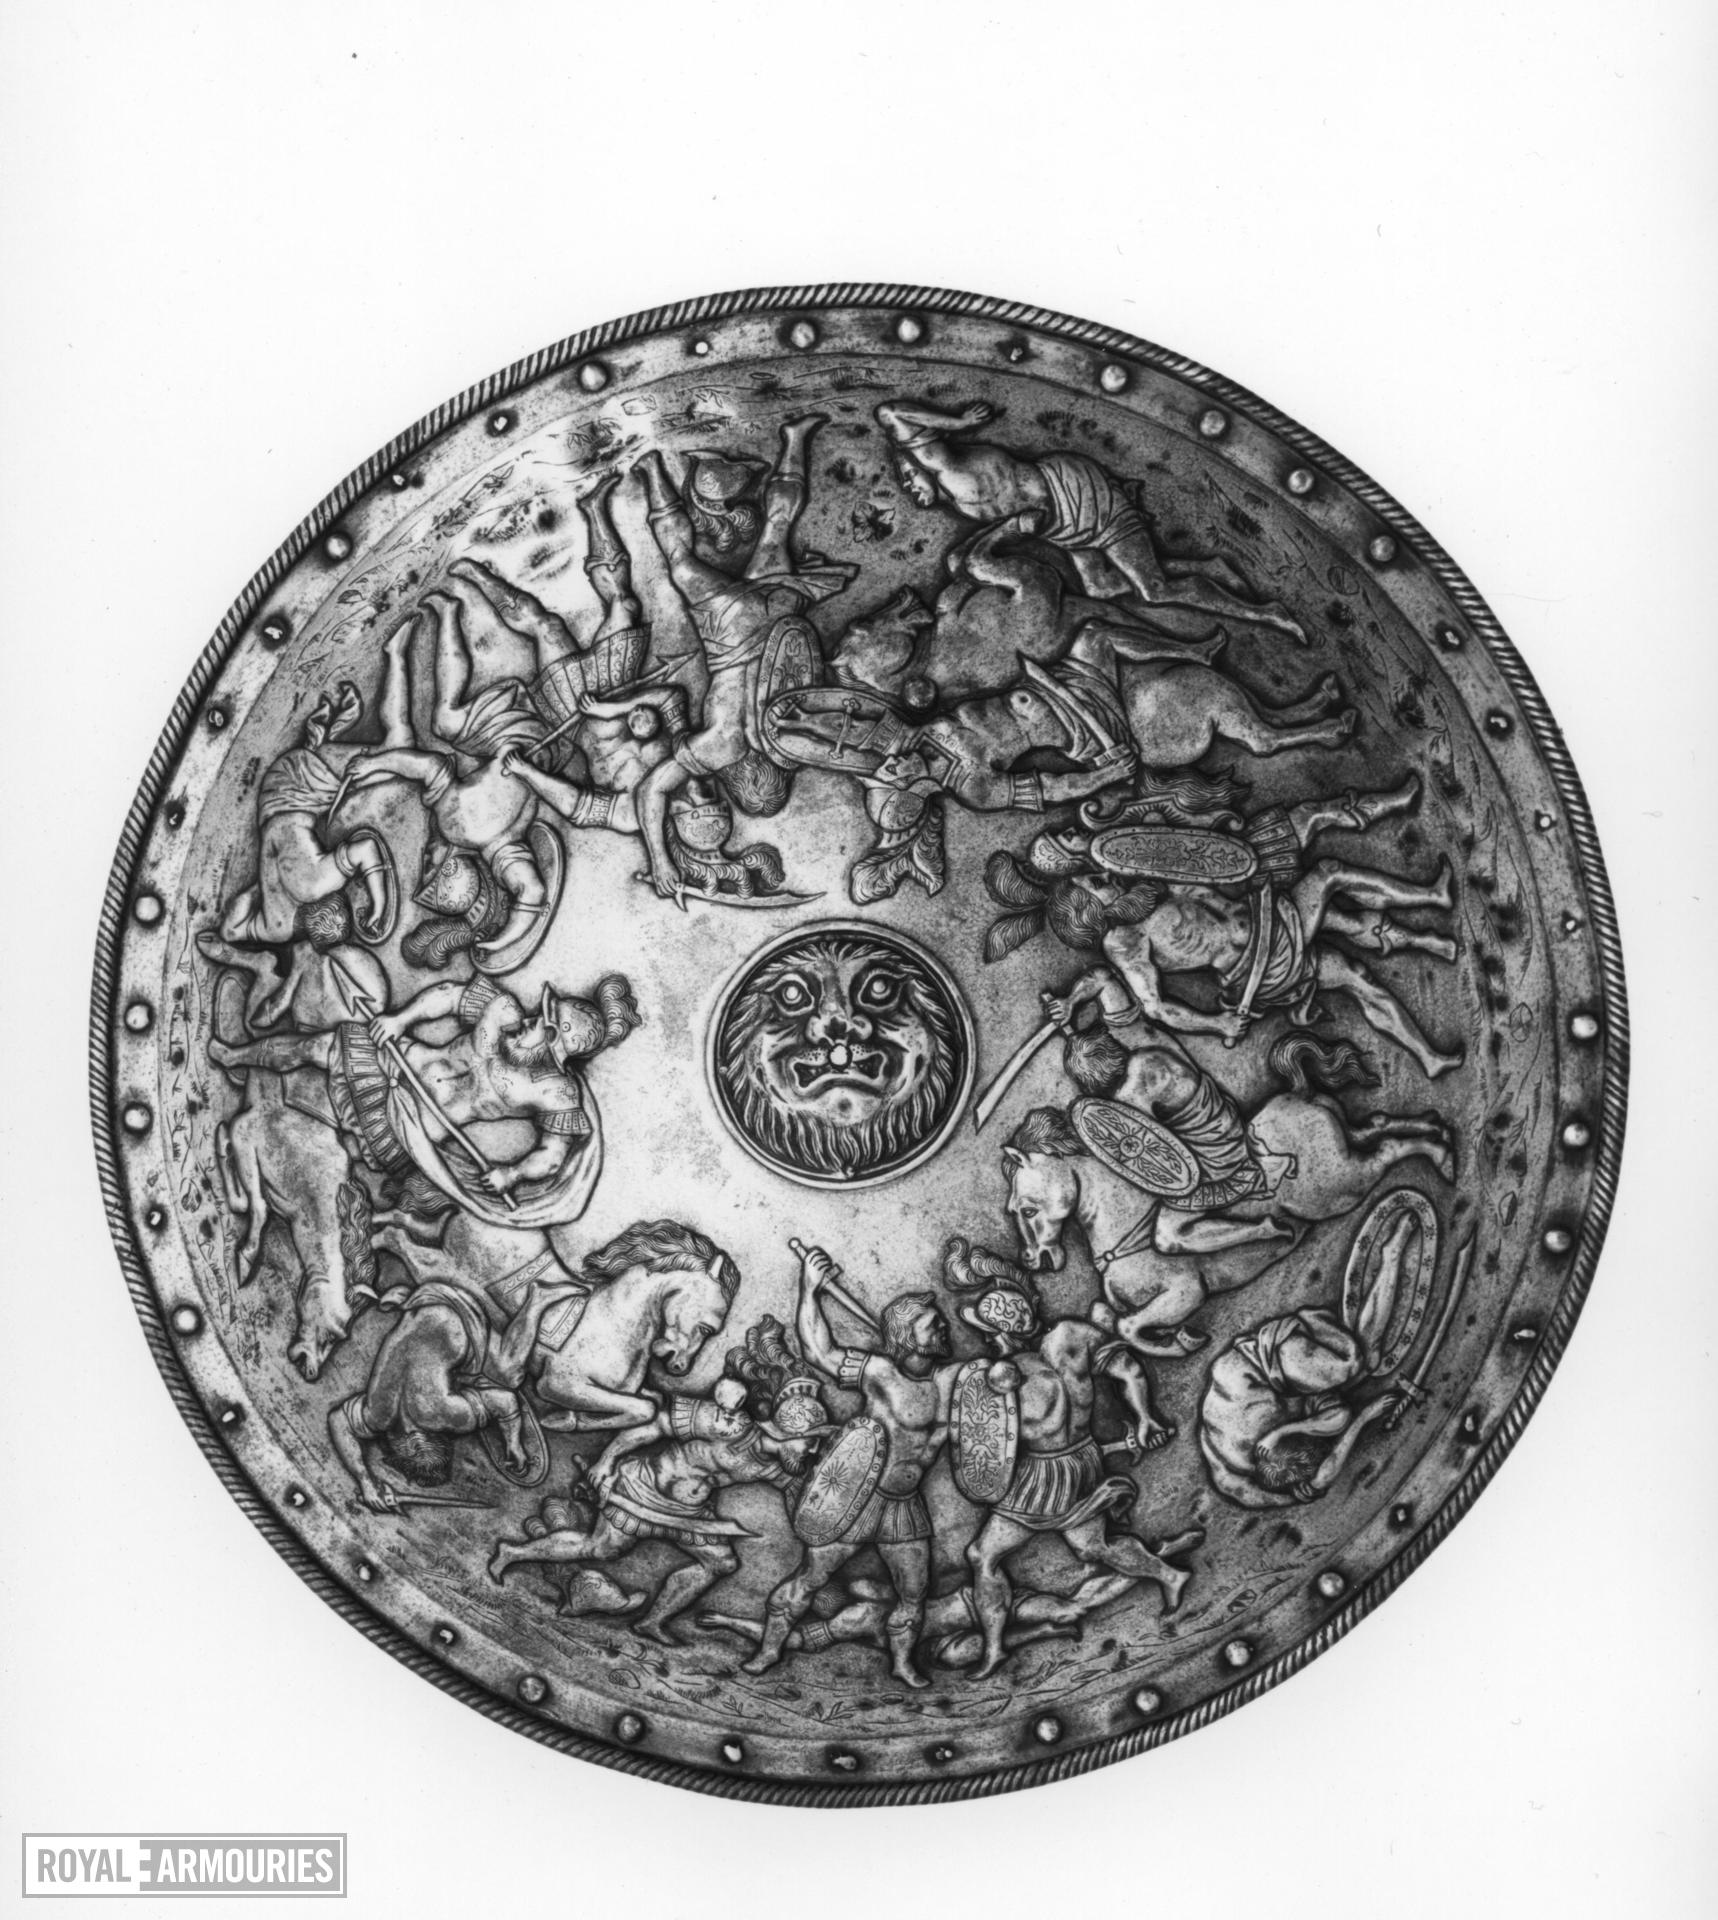 Rondache Embossed with lion and battle scene.